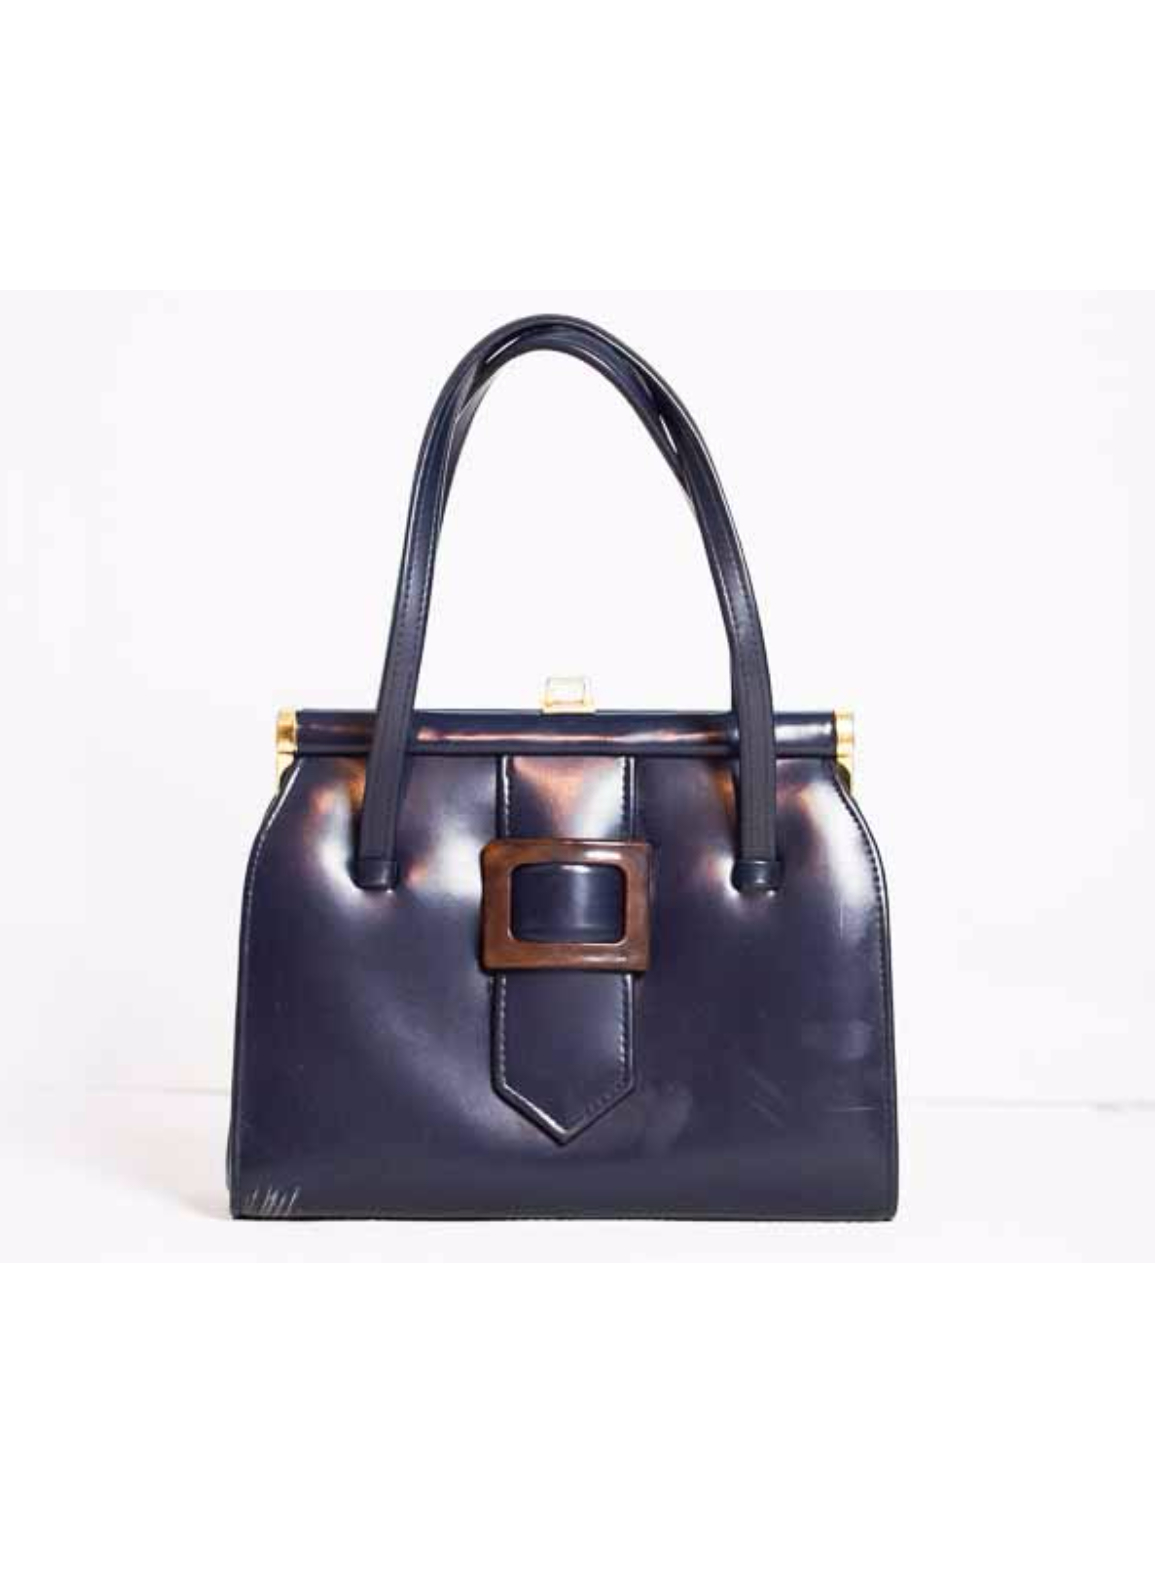 5abcd6f9d09b 1950s Vintage Kelly Bag in Blue Leatherette with Tortoiseshell Buckle